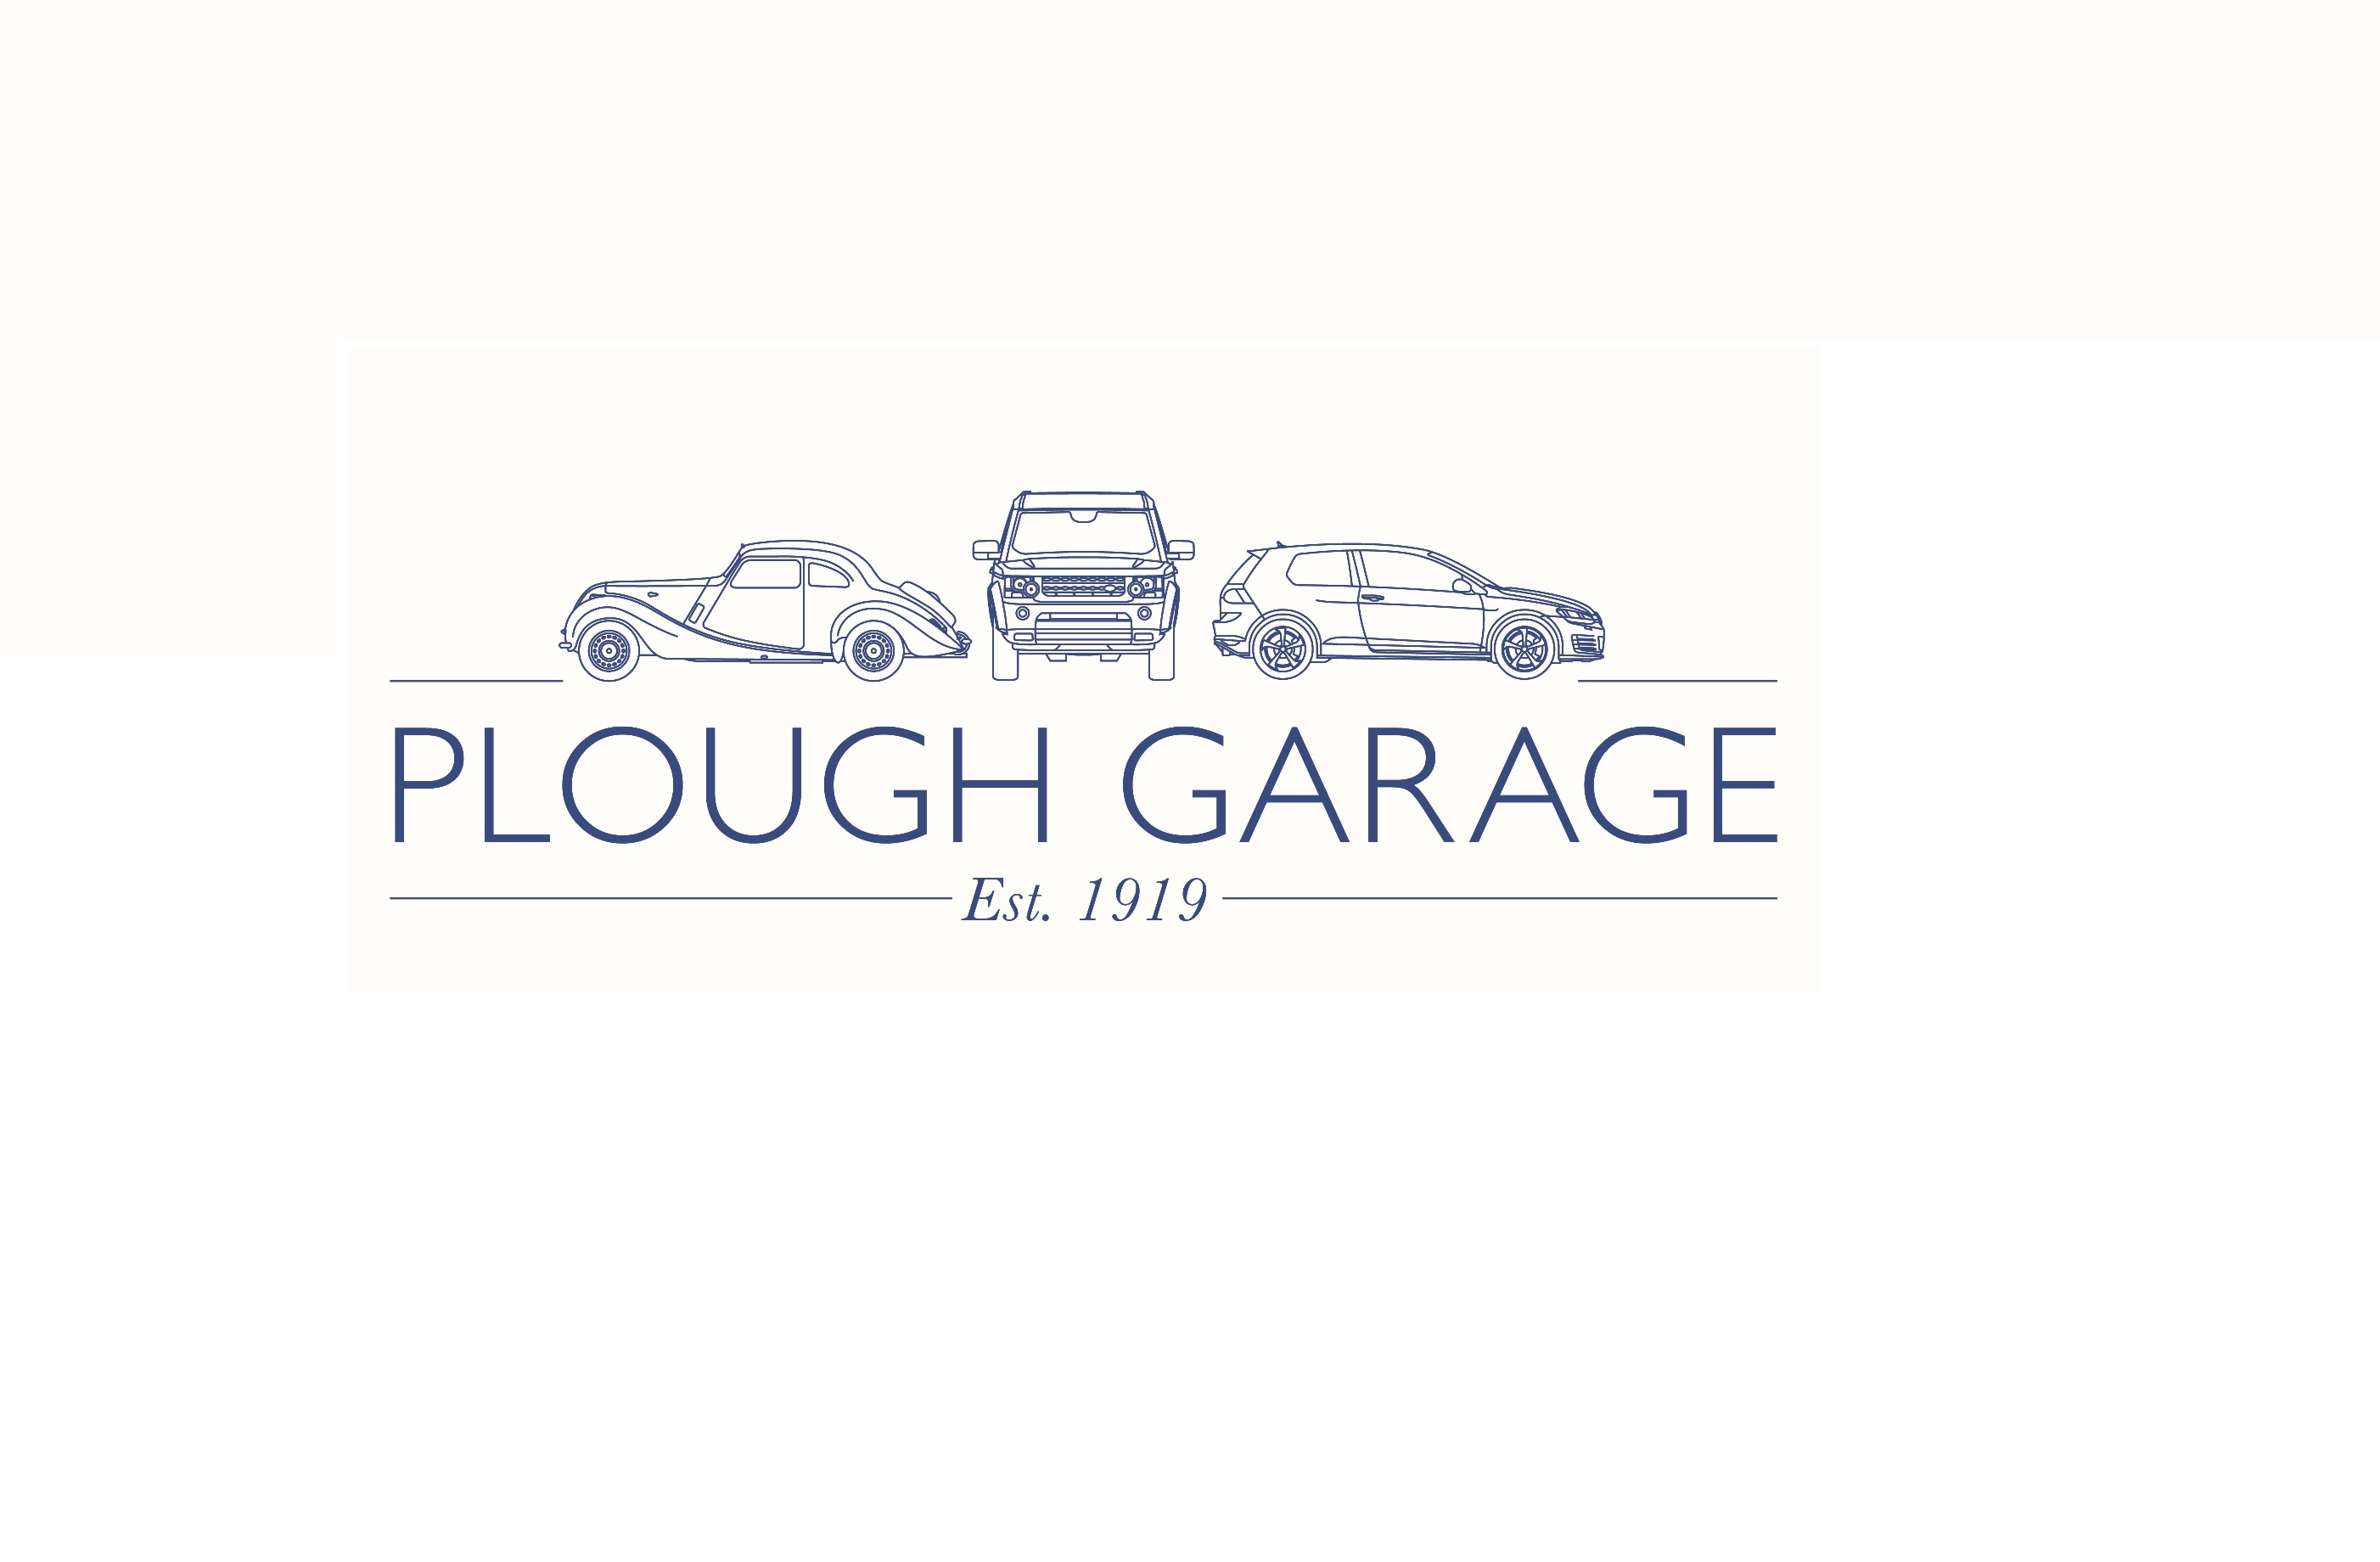 Plough Garage